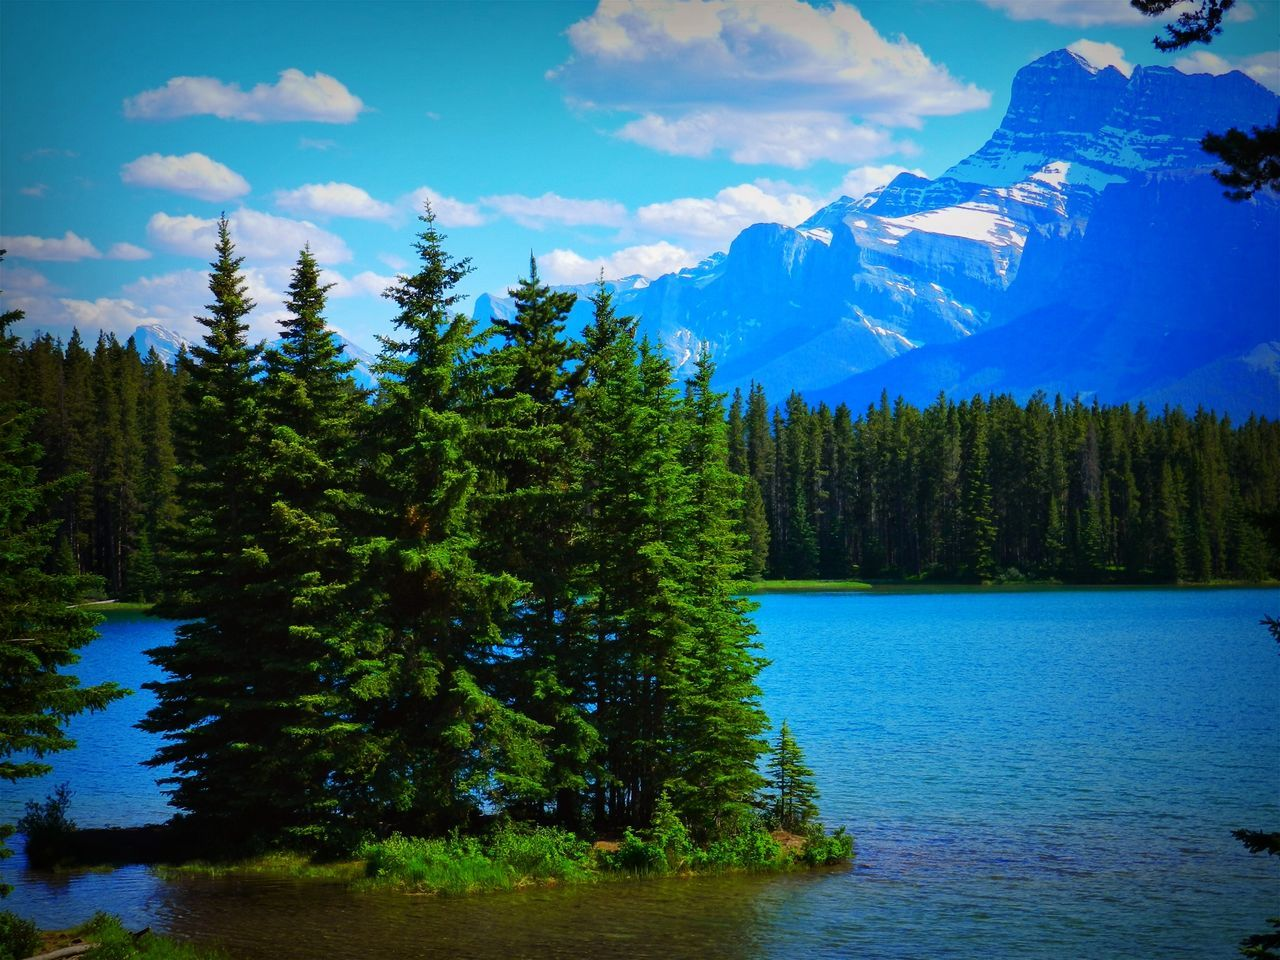 Alberta, Canada Beauty In Nature Canada Cloud - Sky Day Forest Growth Lake Mountain Nature No People Outdoors Scenics Sky Tranquil Scene Tranquility Tree Water Waterfront